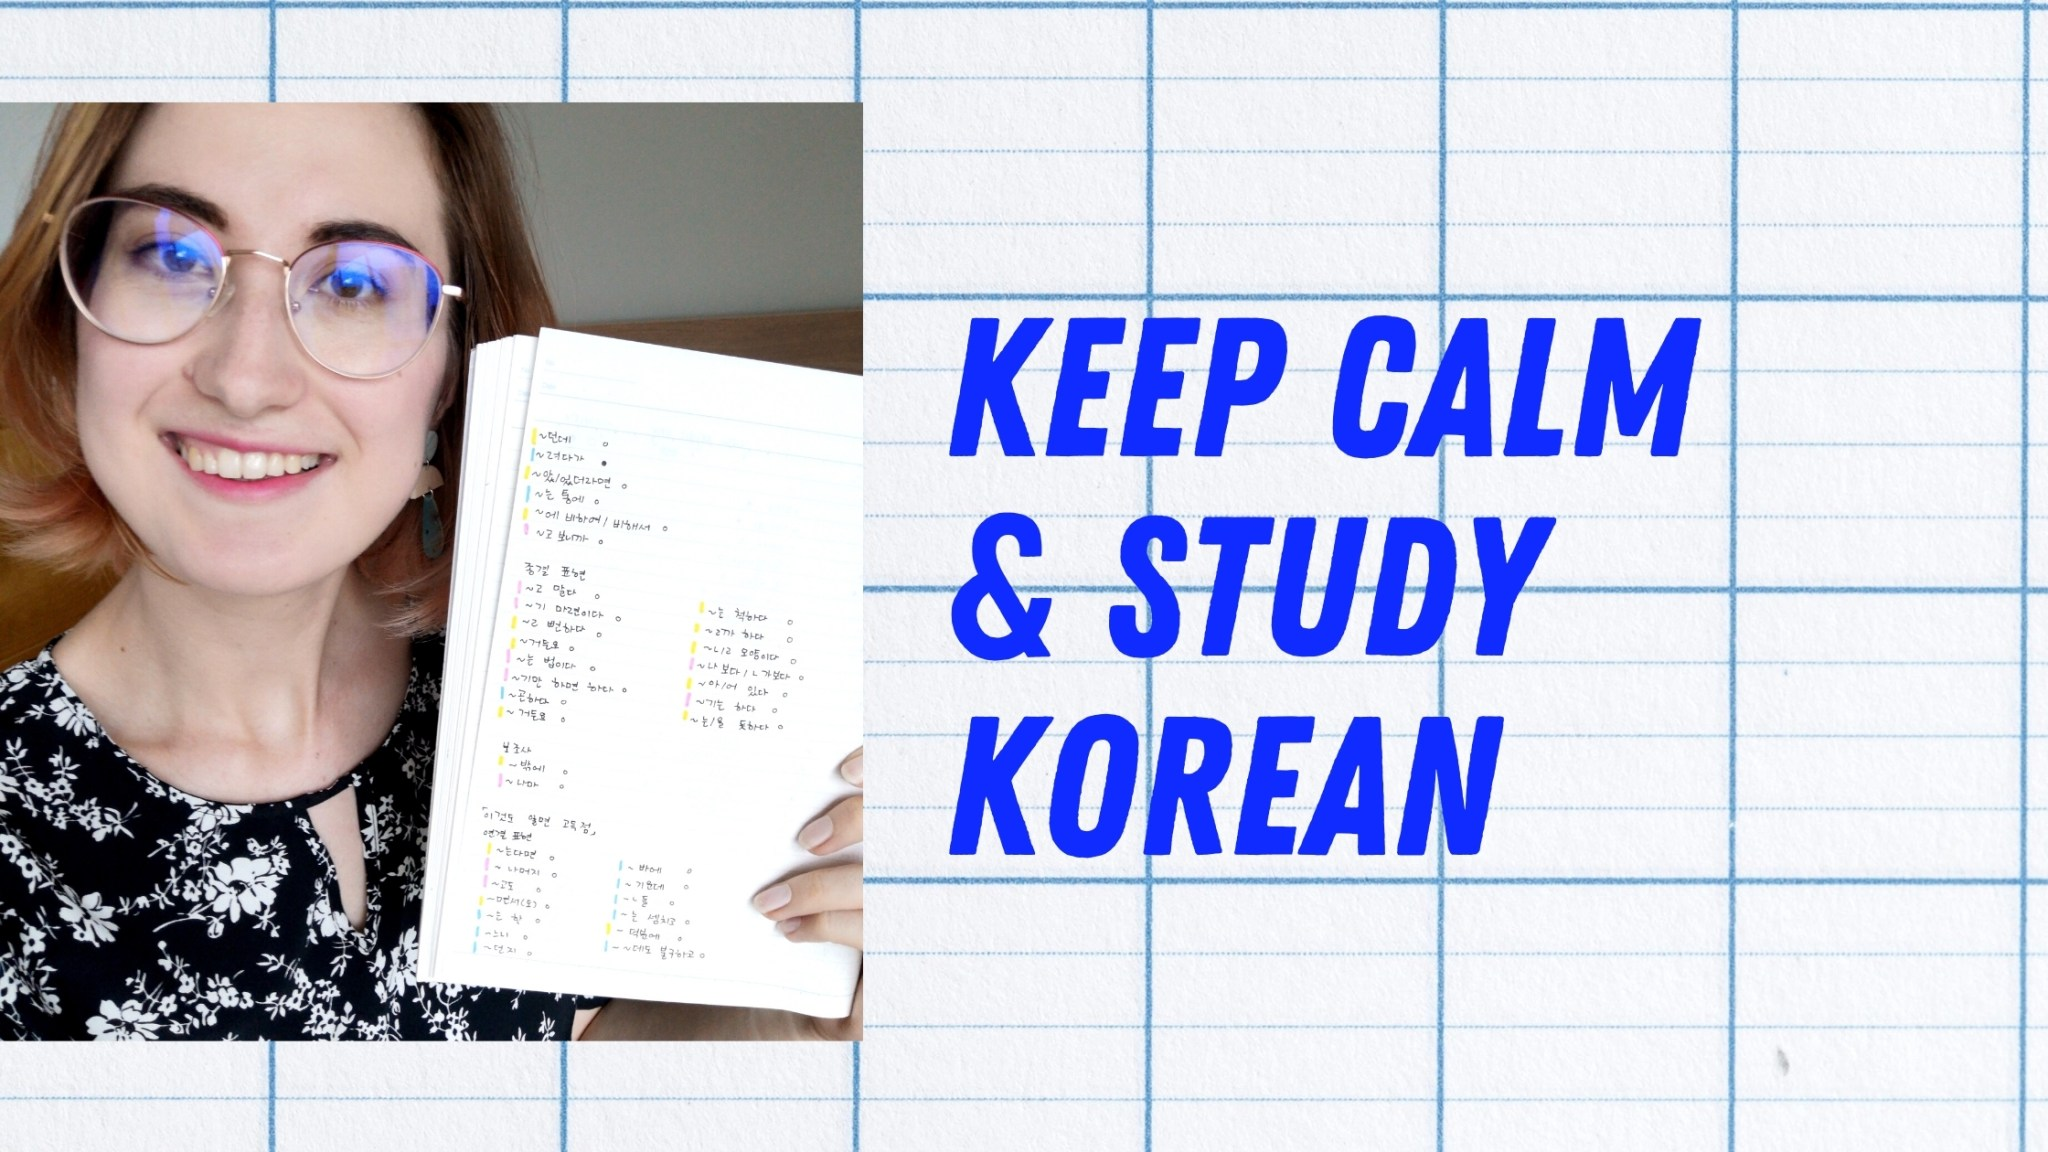 Korean grammar study method